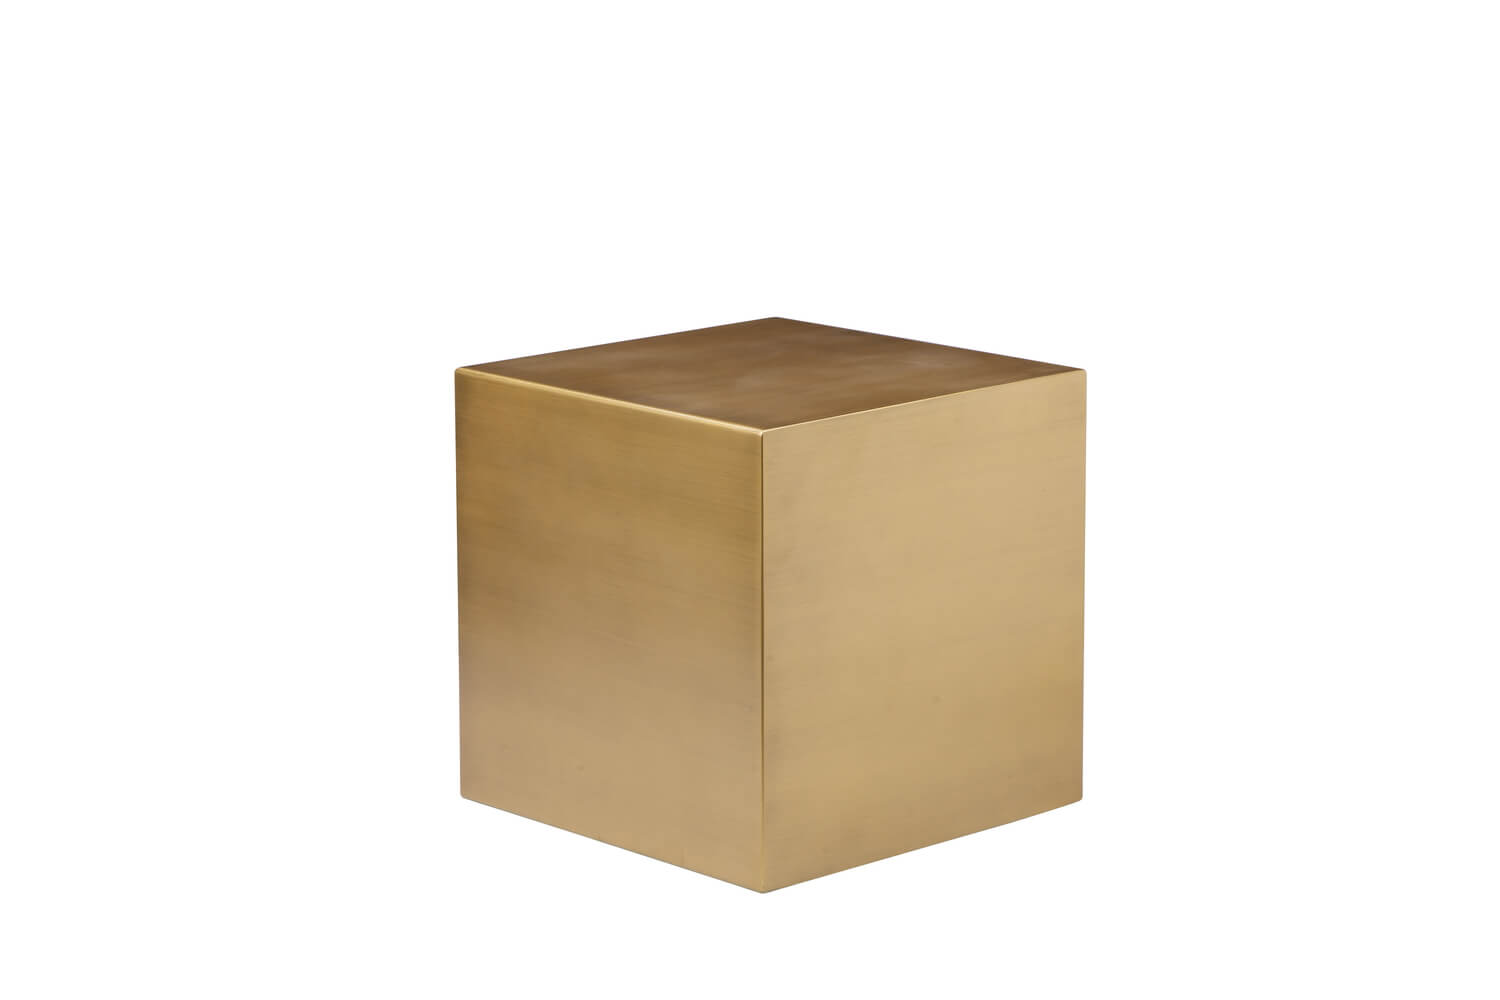 Homeu003eModern Tablesu003eAccent Tableu003eBrass Cube Side Table